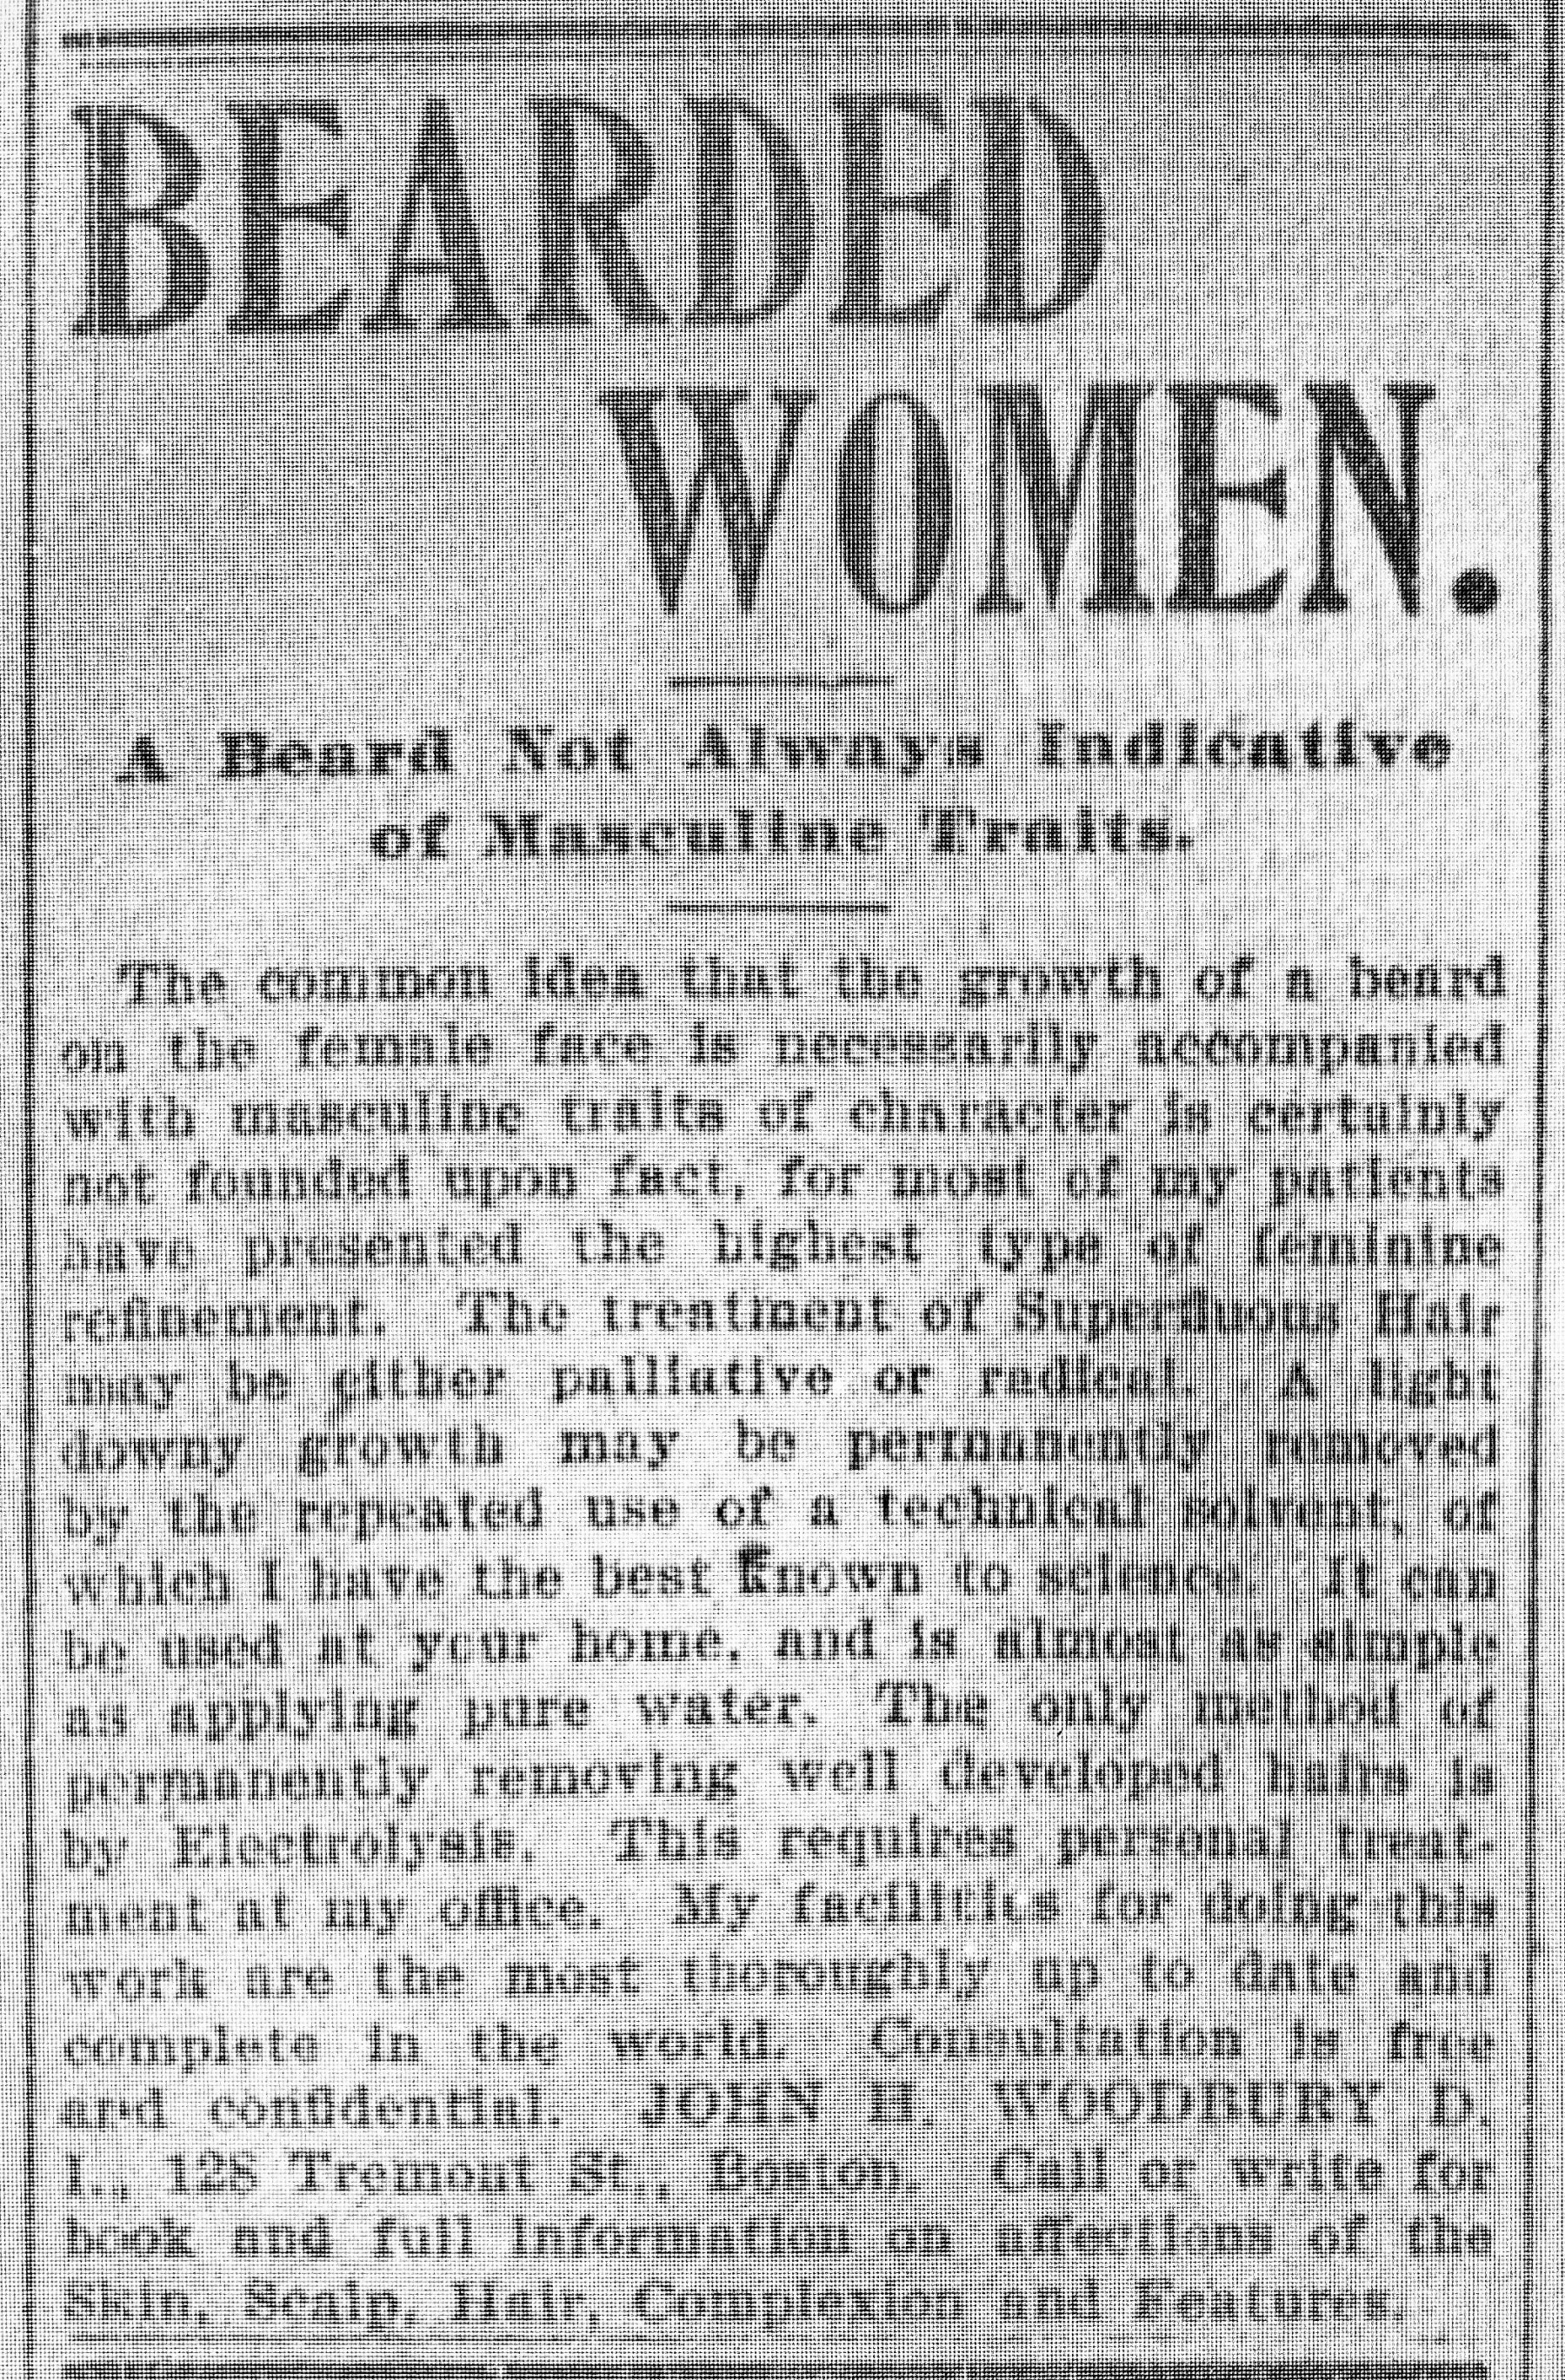 Electrolysis existed in 1901